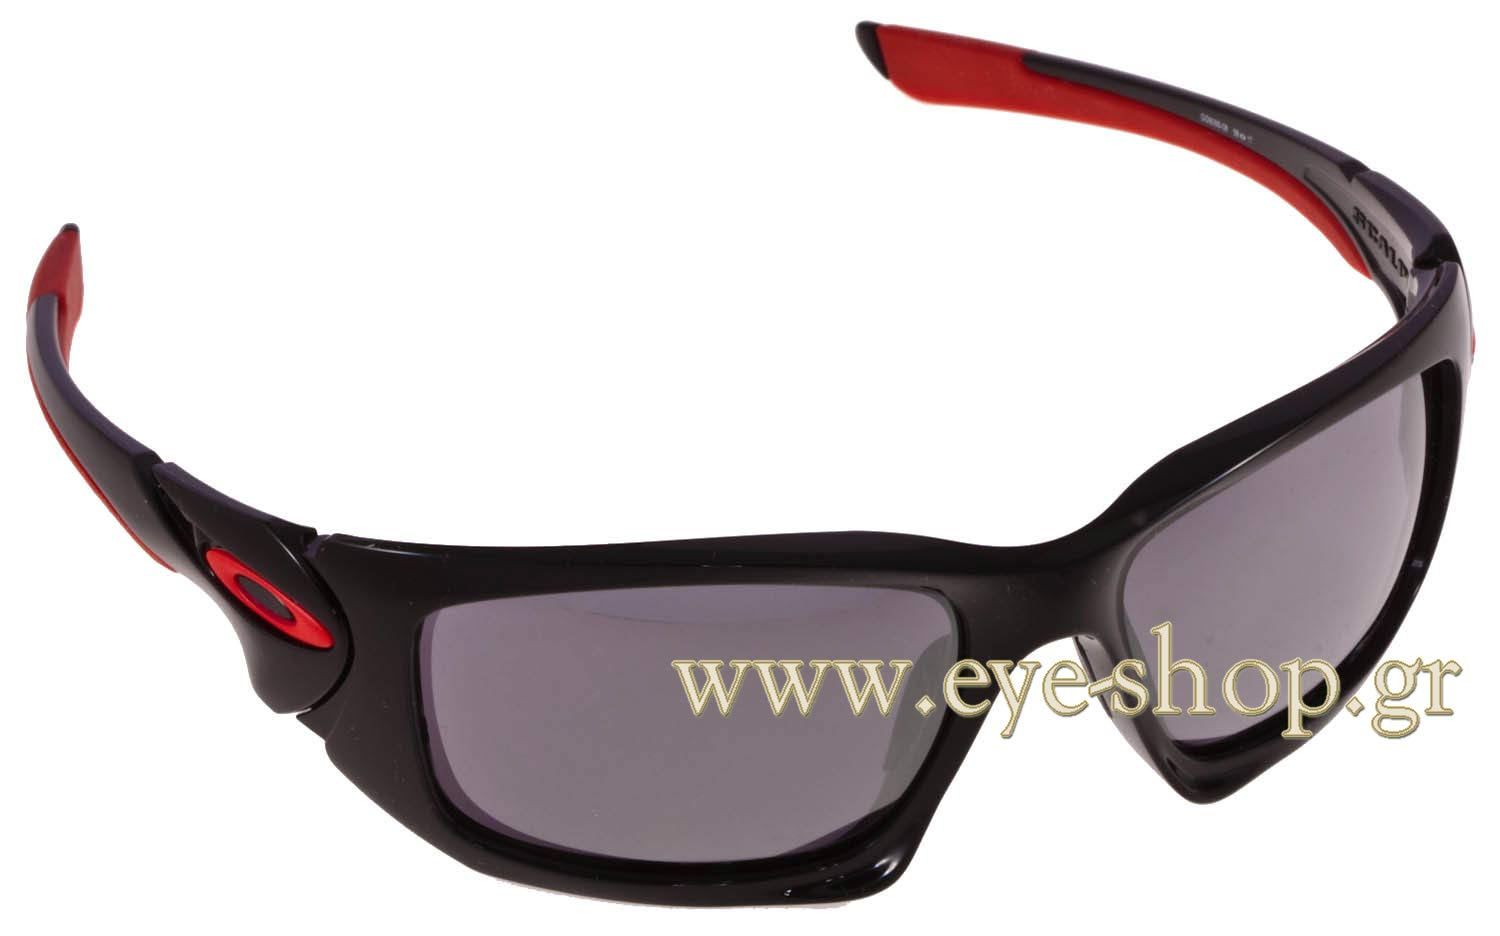 826301076fe Enlarge Colors Discontinued. Sunglasses Oakley Scalpel 9095 08 Ducati  Limited Edition